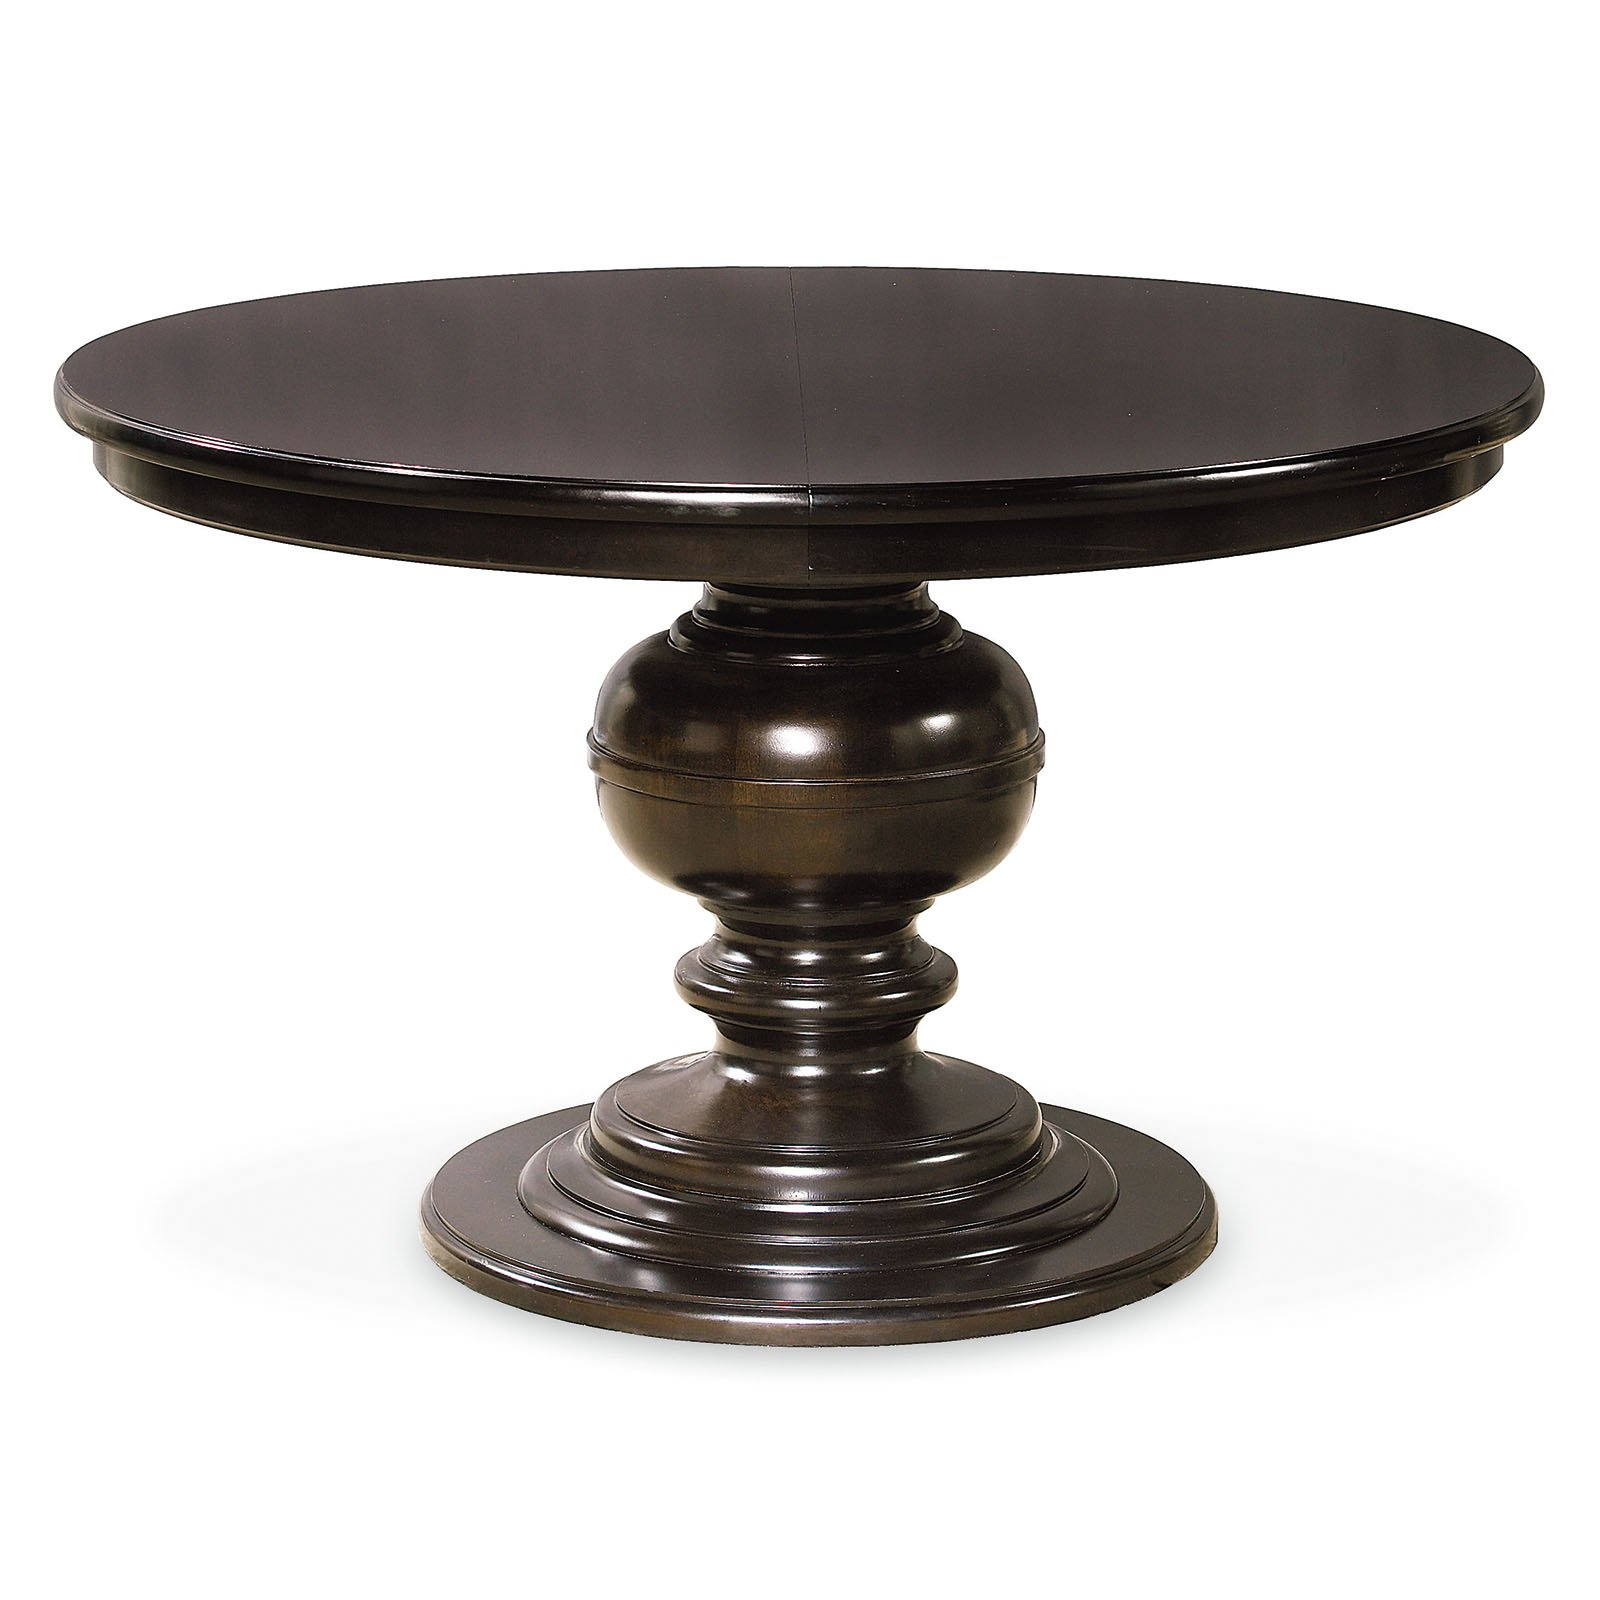 Mesmerizing Pedestal Dining Table For Dining Room With Round Pedestal  Dining Table